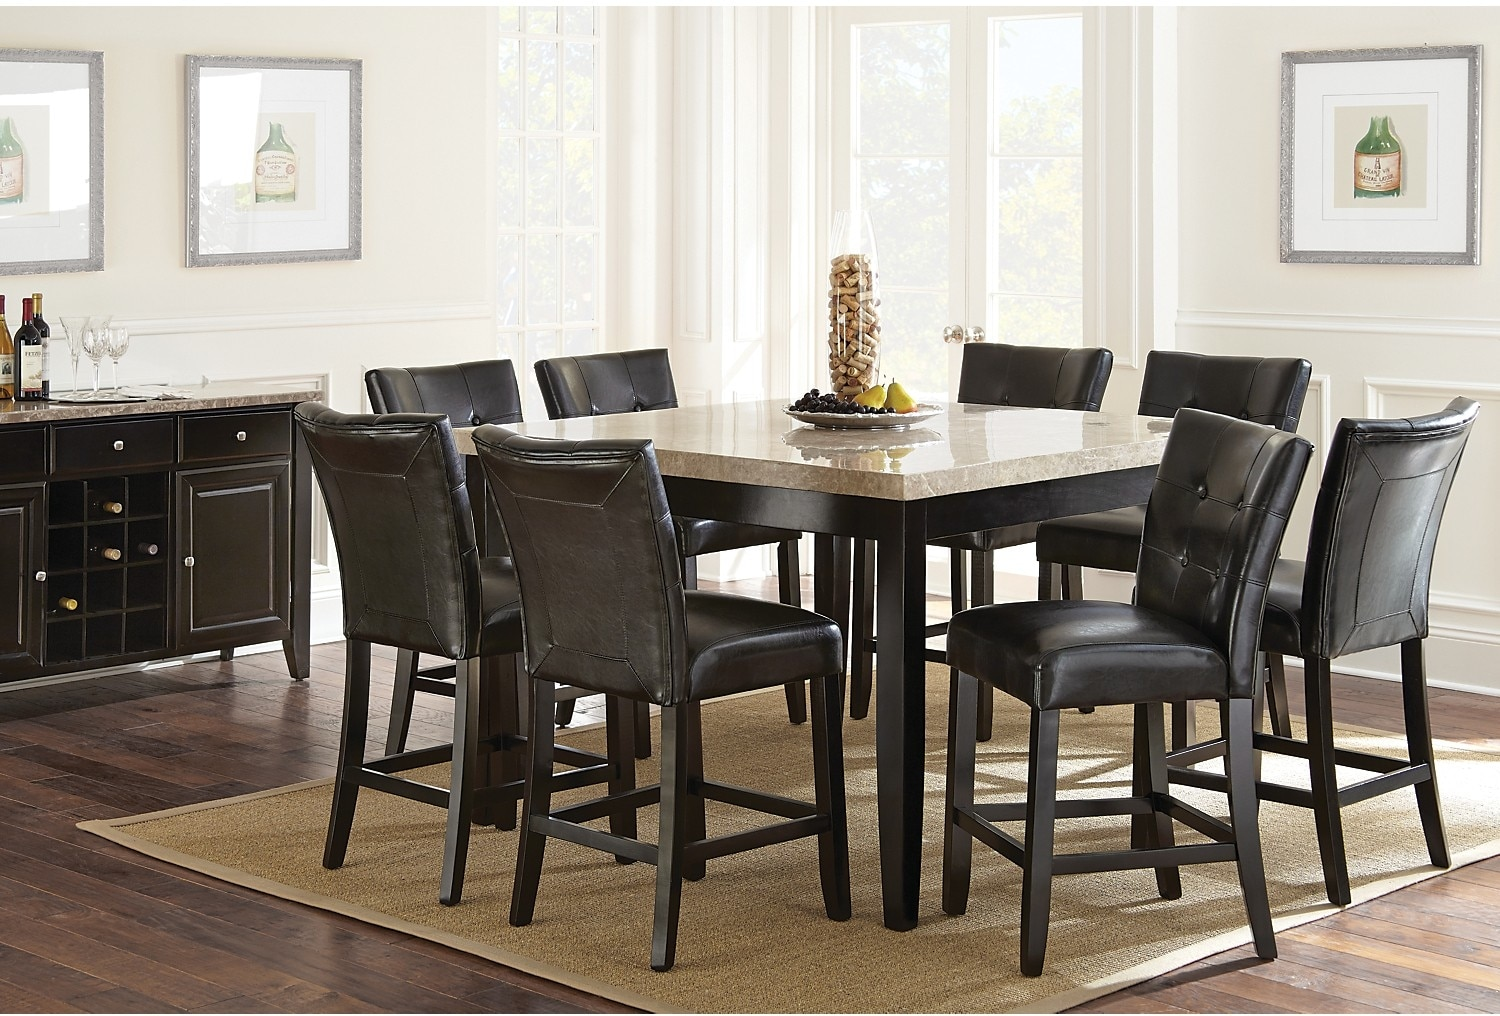 dining room furniture montibello 8 piece counter height dining